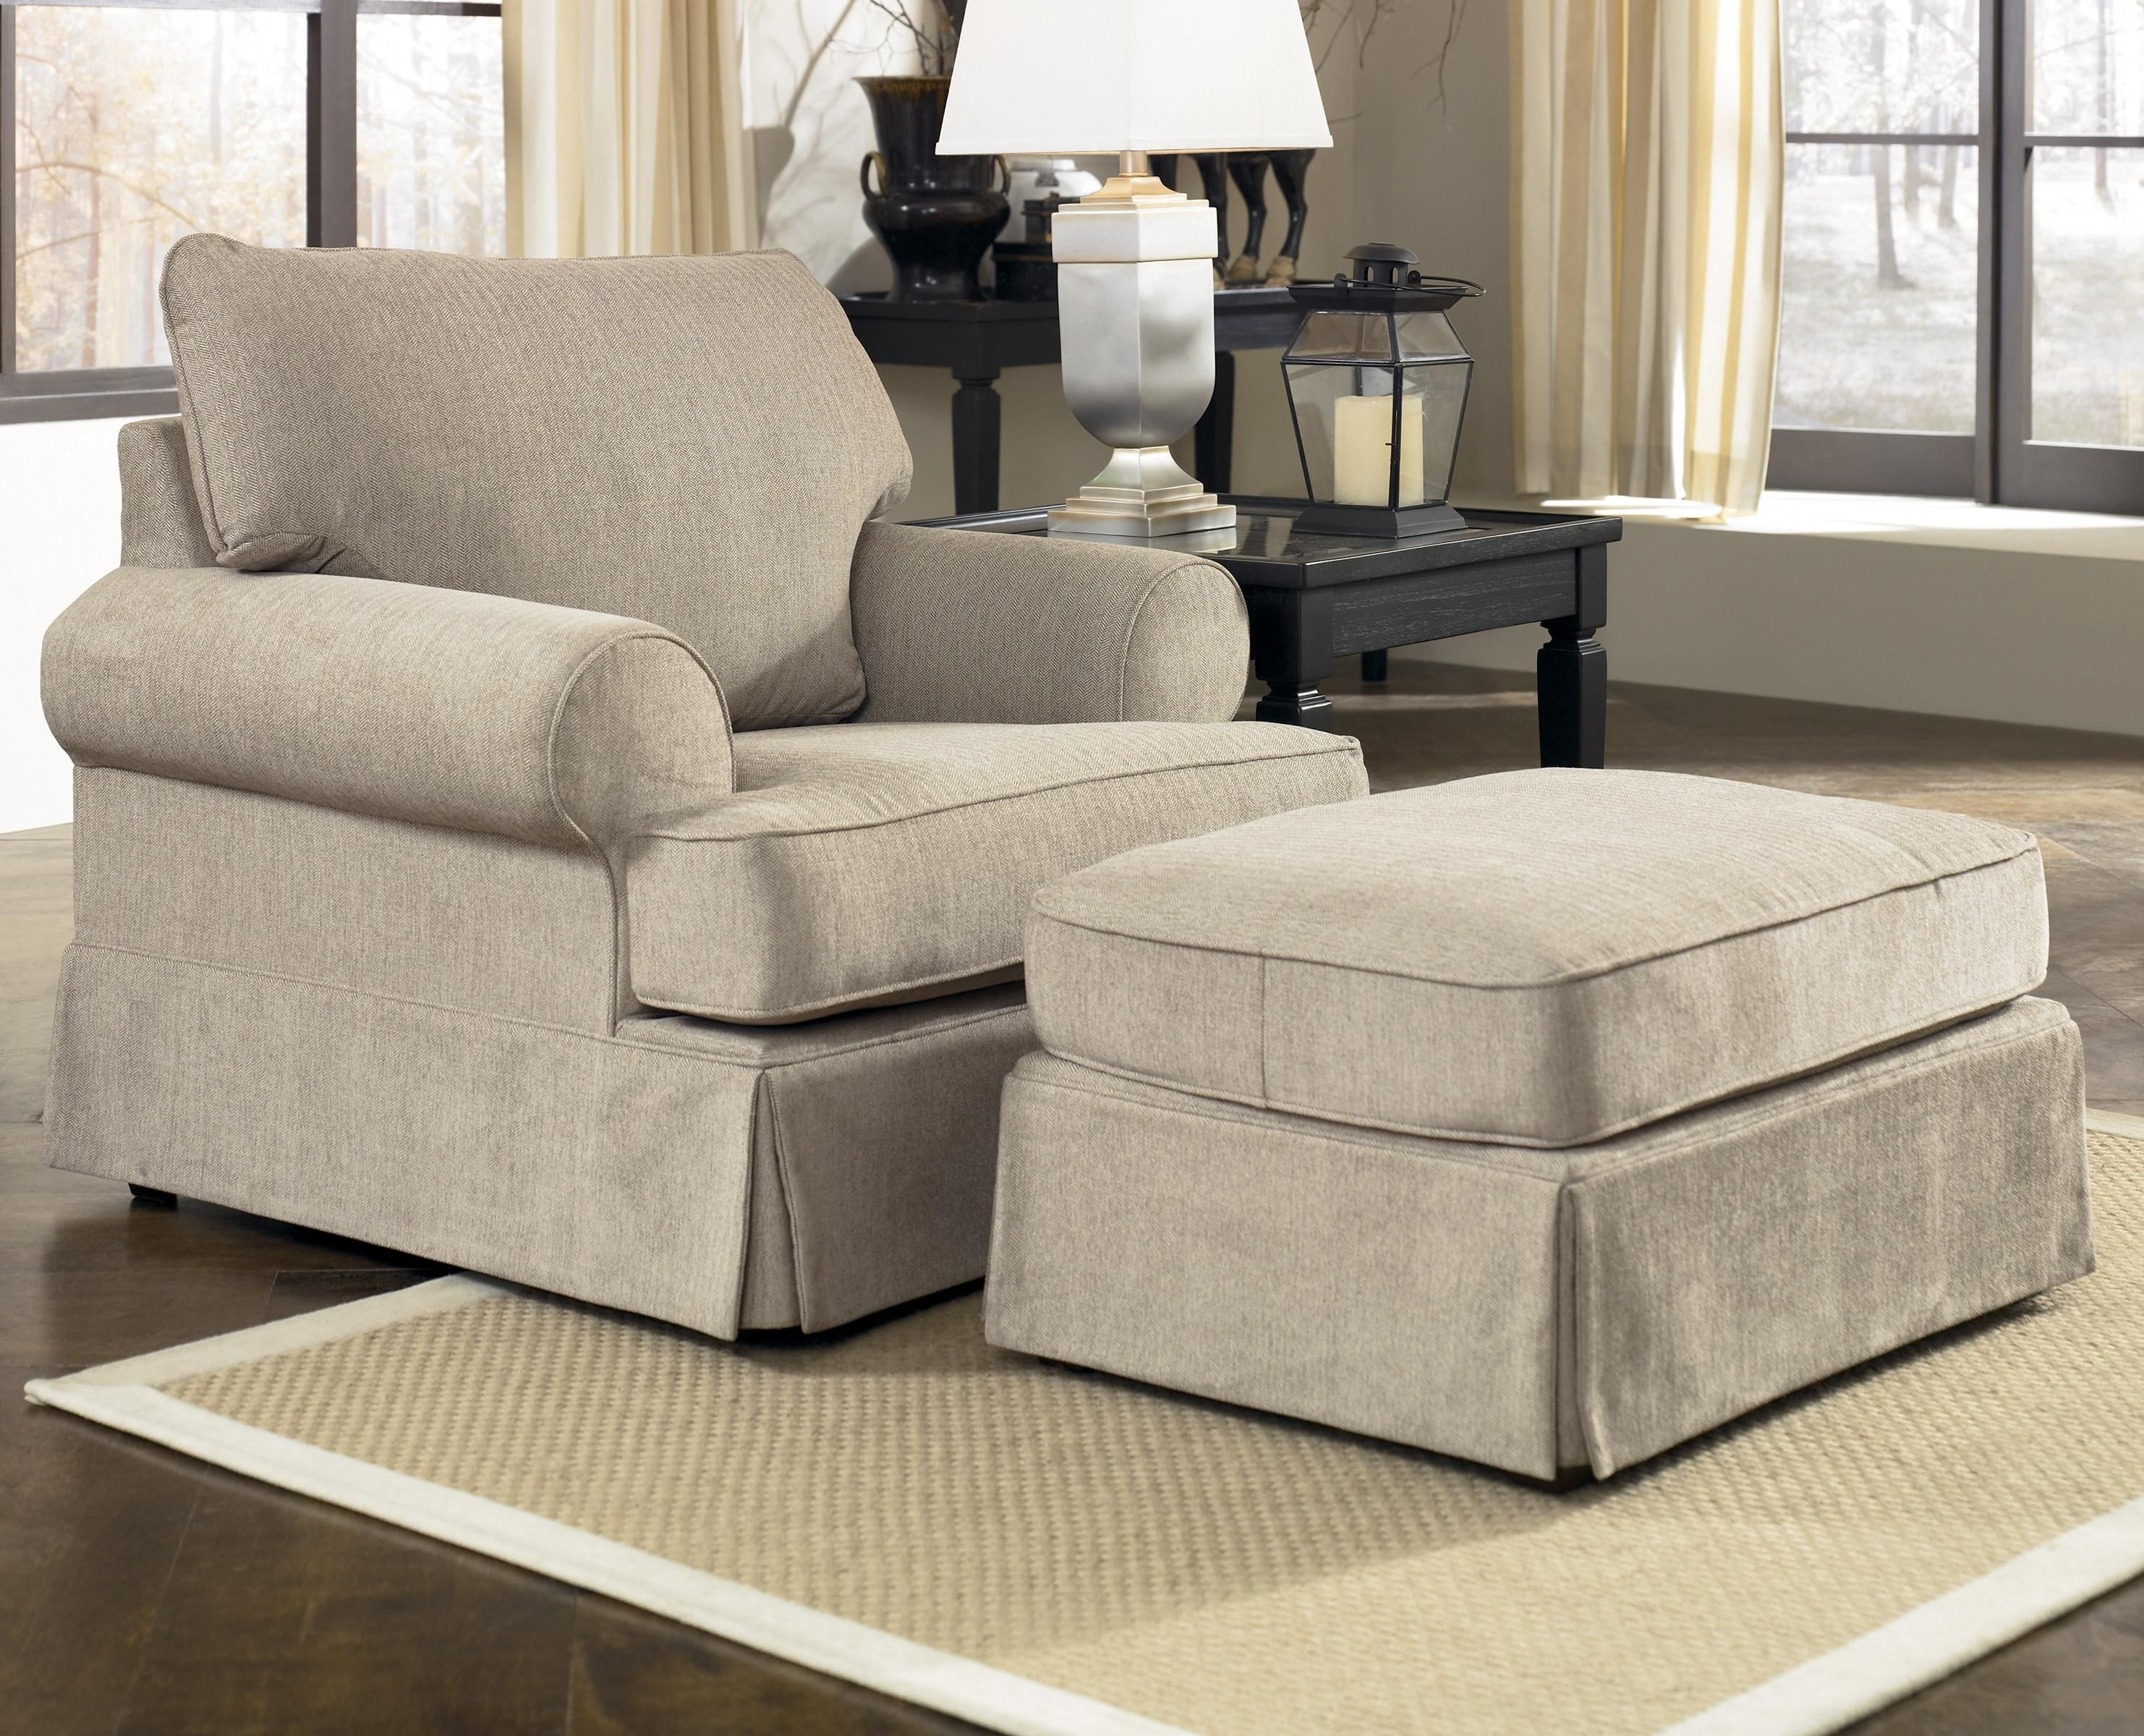 Living Room Chair With Ottoman Candlewick Linen Chair And Ottoman By Signature Design By Ashley